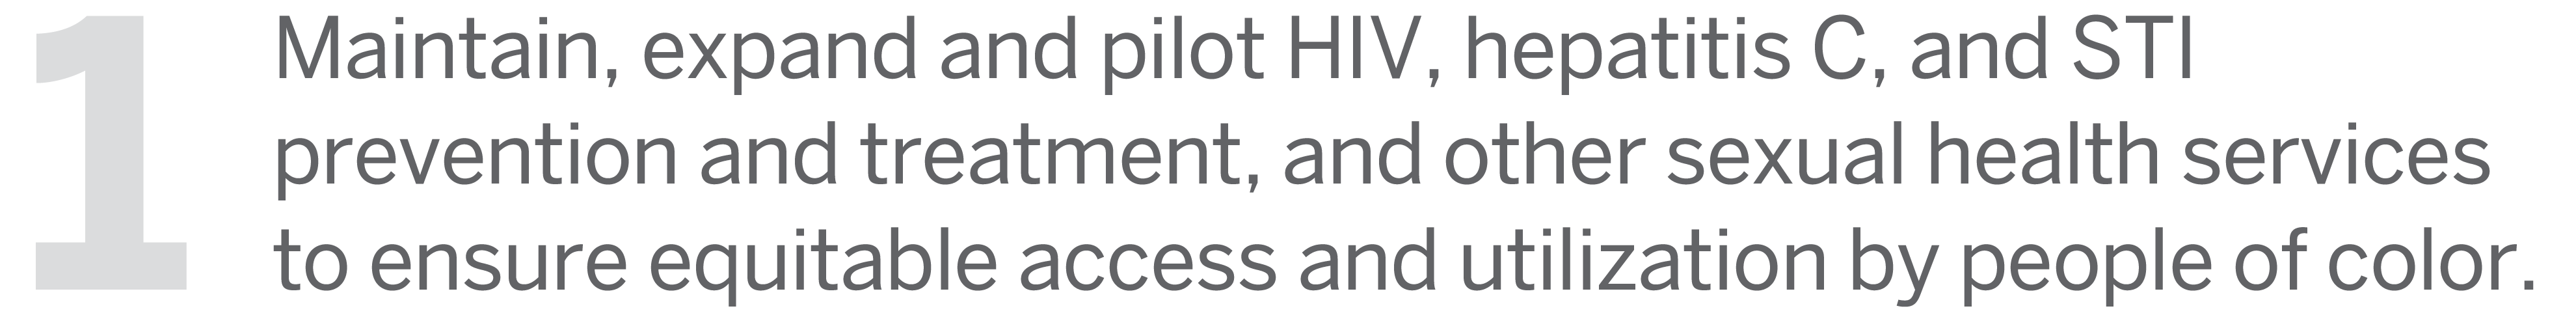 1: Maintain, expand and pilot HIV, hepatitis C, and STI prevention and treatment, and other sexual health services to ensure equitable access and utilization by people of color